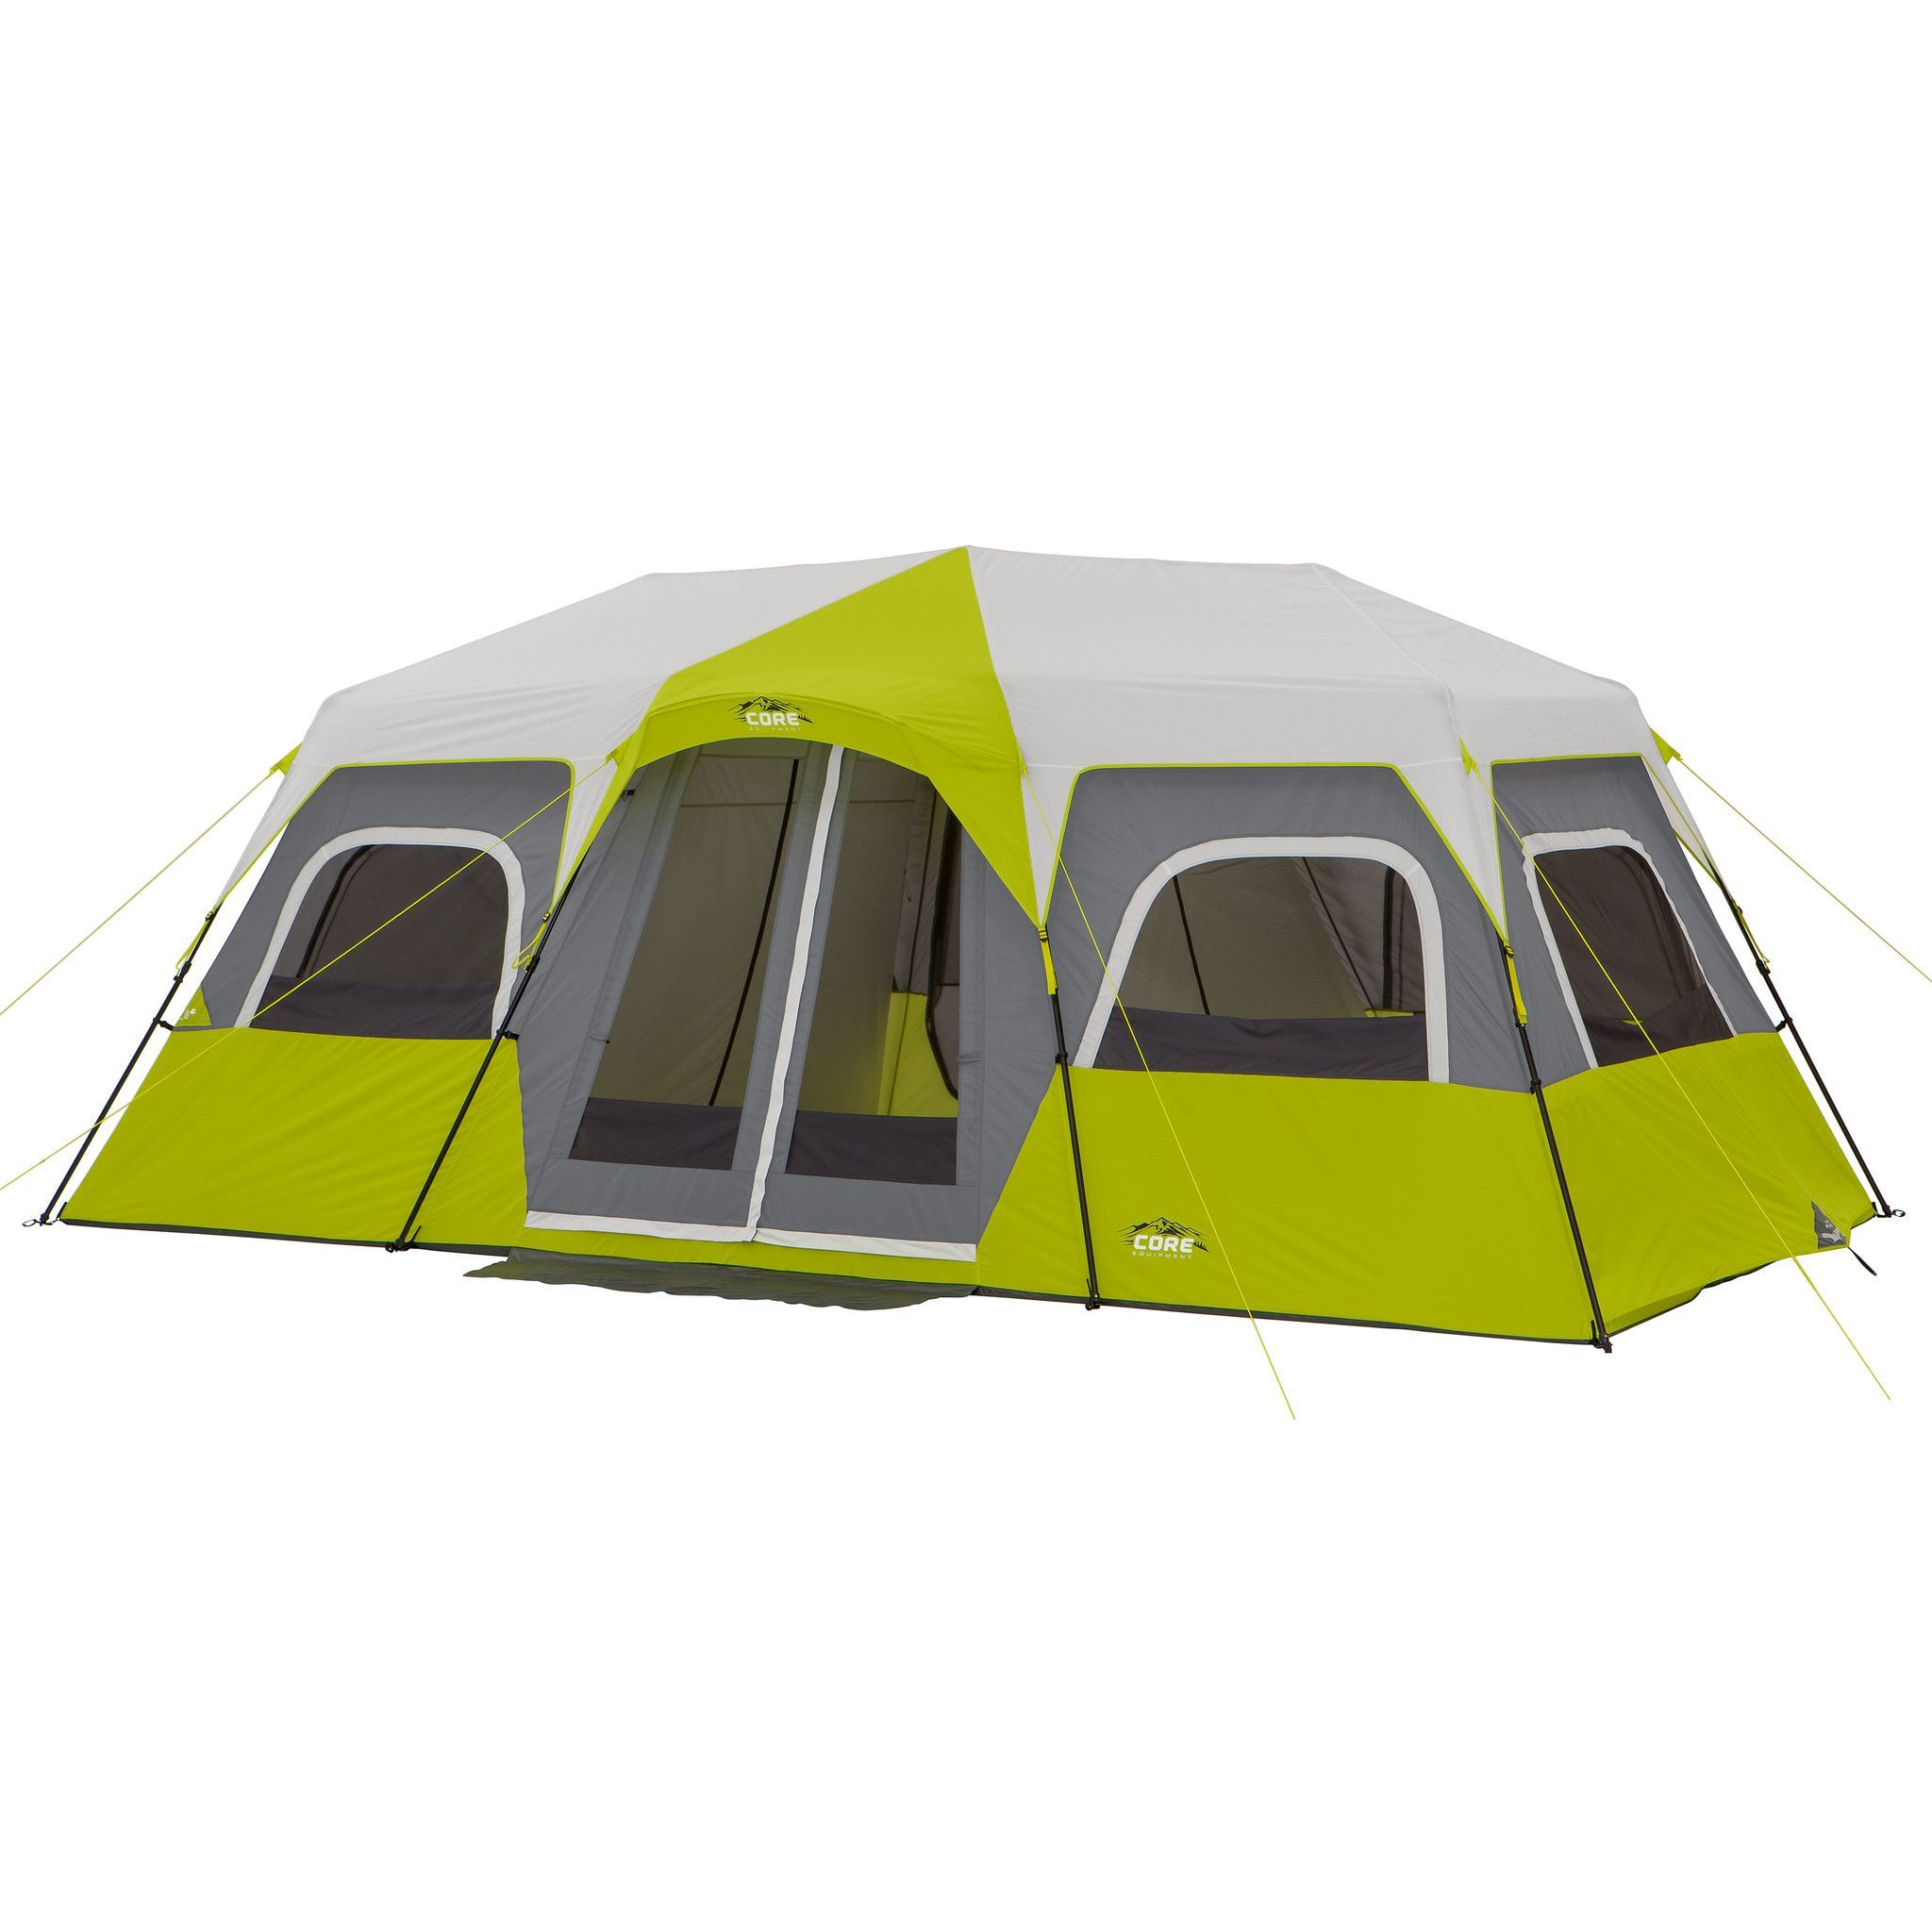 12 Person Instant Cabin Tent 18u0027 x 10u0027  sc 1 st  Pinterest & 12 Person Instant Cabin Tent 18u0027 x 10u0027 | Cabin tent Tents and Cabin